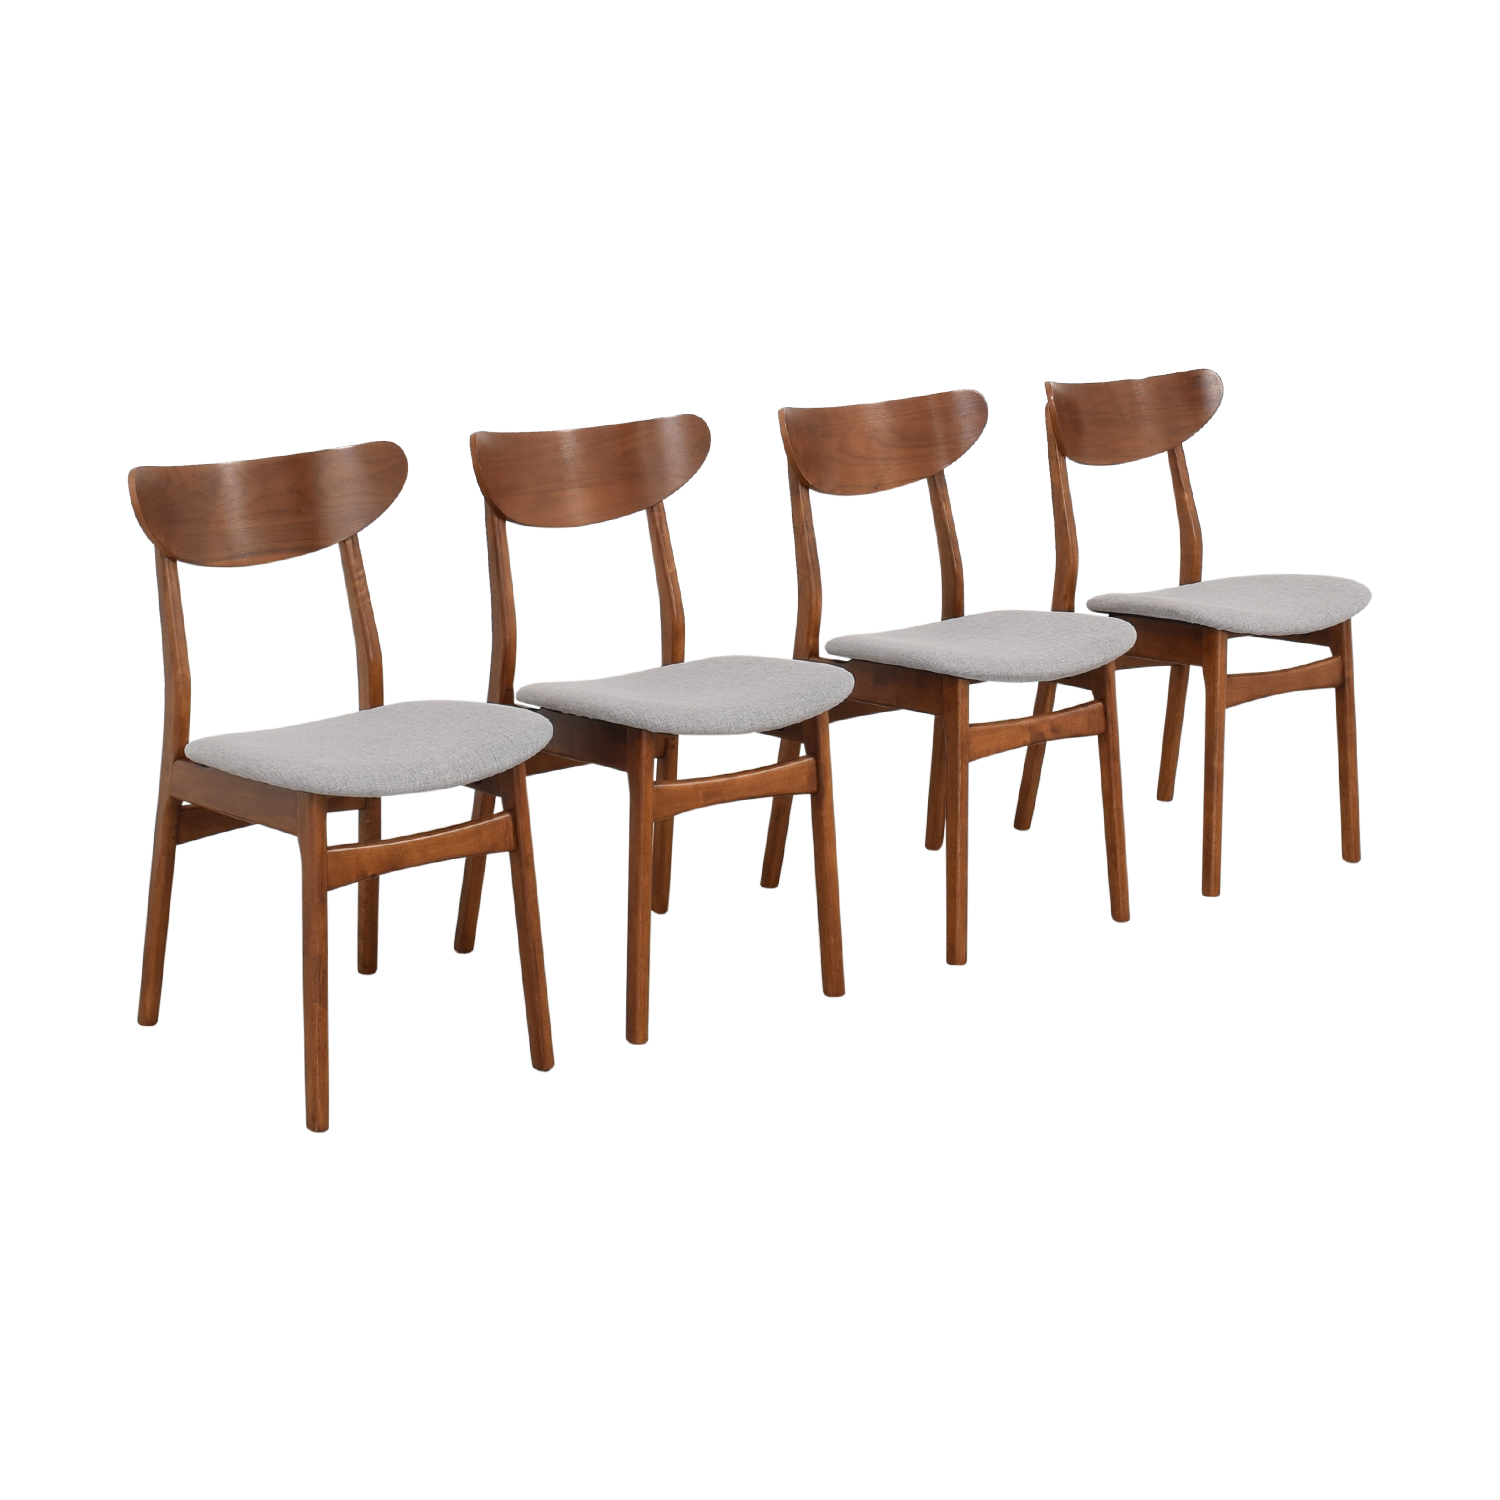 West Elm West Elm Classic Café Upholstered Dining Chairs second hand